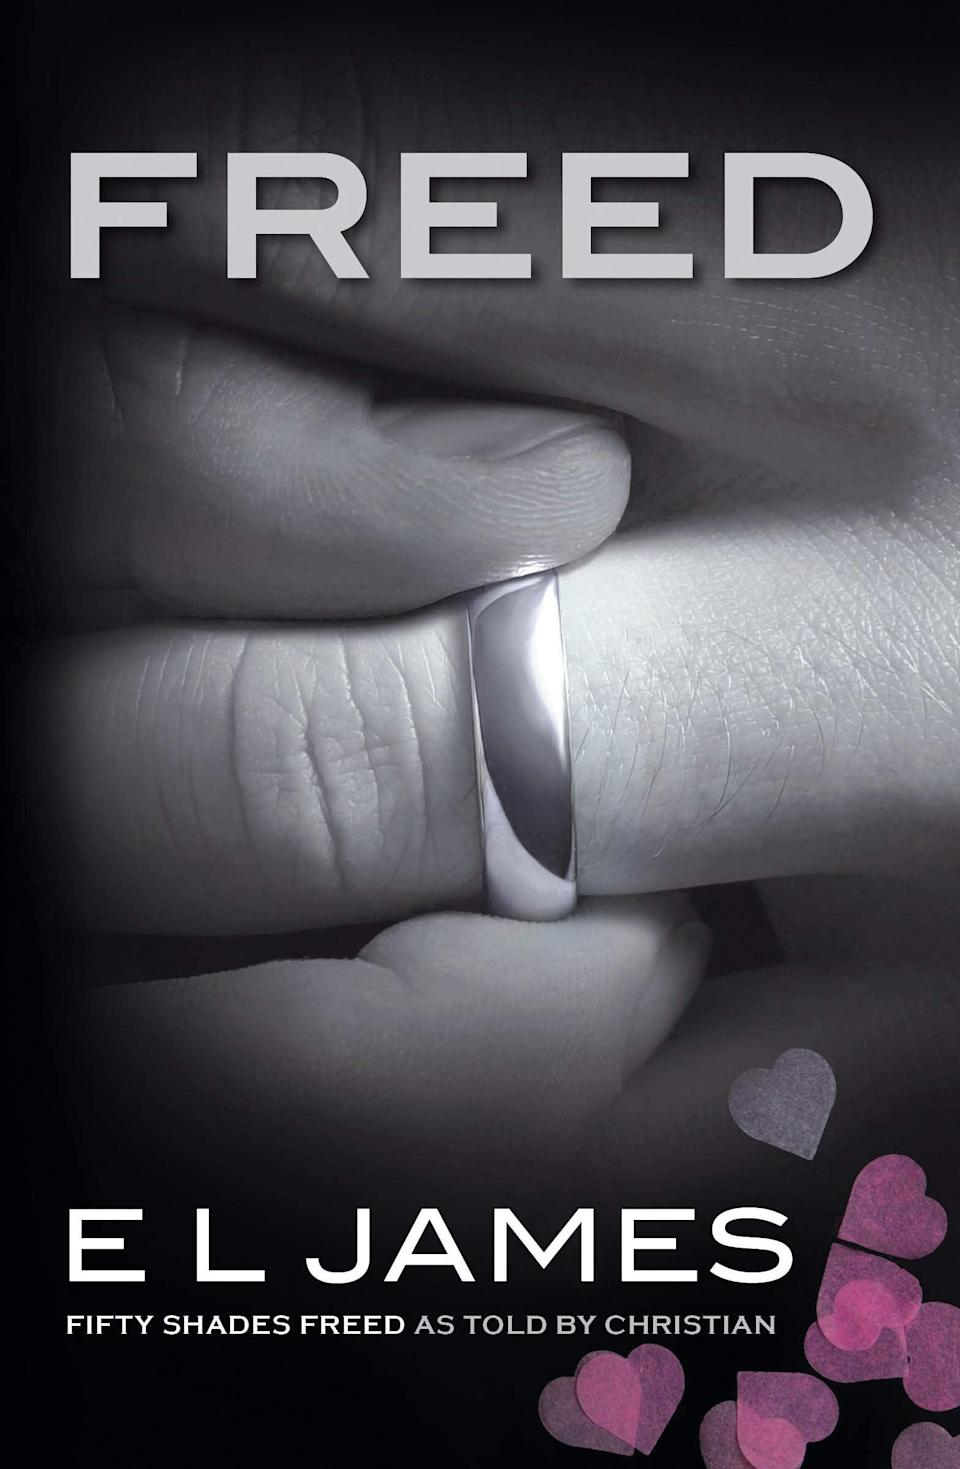 """<p>Can't get enough of <strong>50 Shades of Grey</strong>? Then E.L. James has you covered. In <span><strong>Freed</strong></span>, she's retelling every steamy moment from <strong>Fifty Shades Freed</strong> from the perspective of Mr. Christian Grey himself - and yes, that includes the couple's long-awaited and unforgettable <a class=""""link rapid-noclick-resp"""" href=""""https://www.popsugar.com/Wedding"""" rel=""""nofollow noopener"""" target=""""_blank"""" data-ylk=""""slk:wedding"""">wedding</a> night. </p> <p><em>Out June 1</em></p>"""